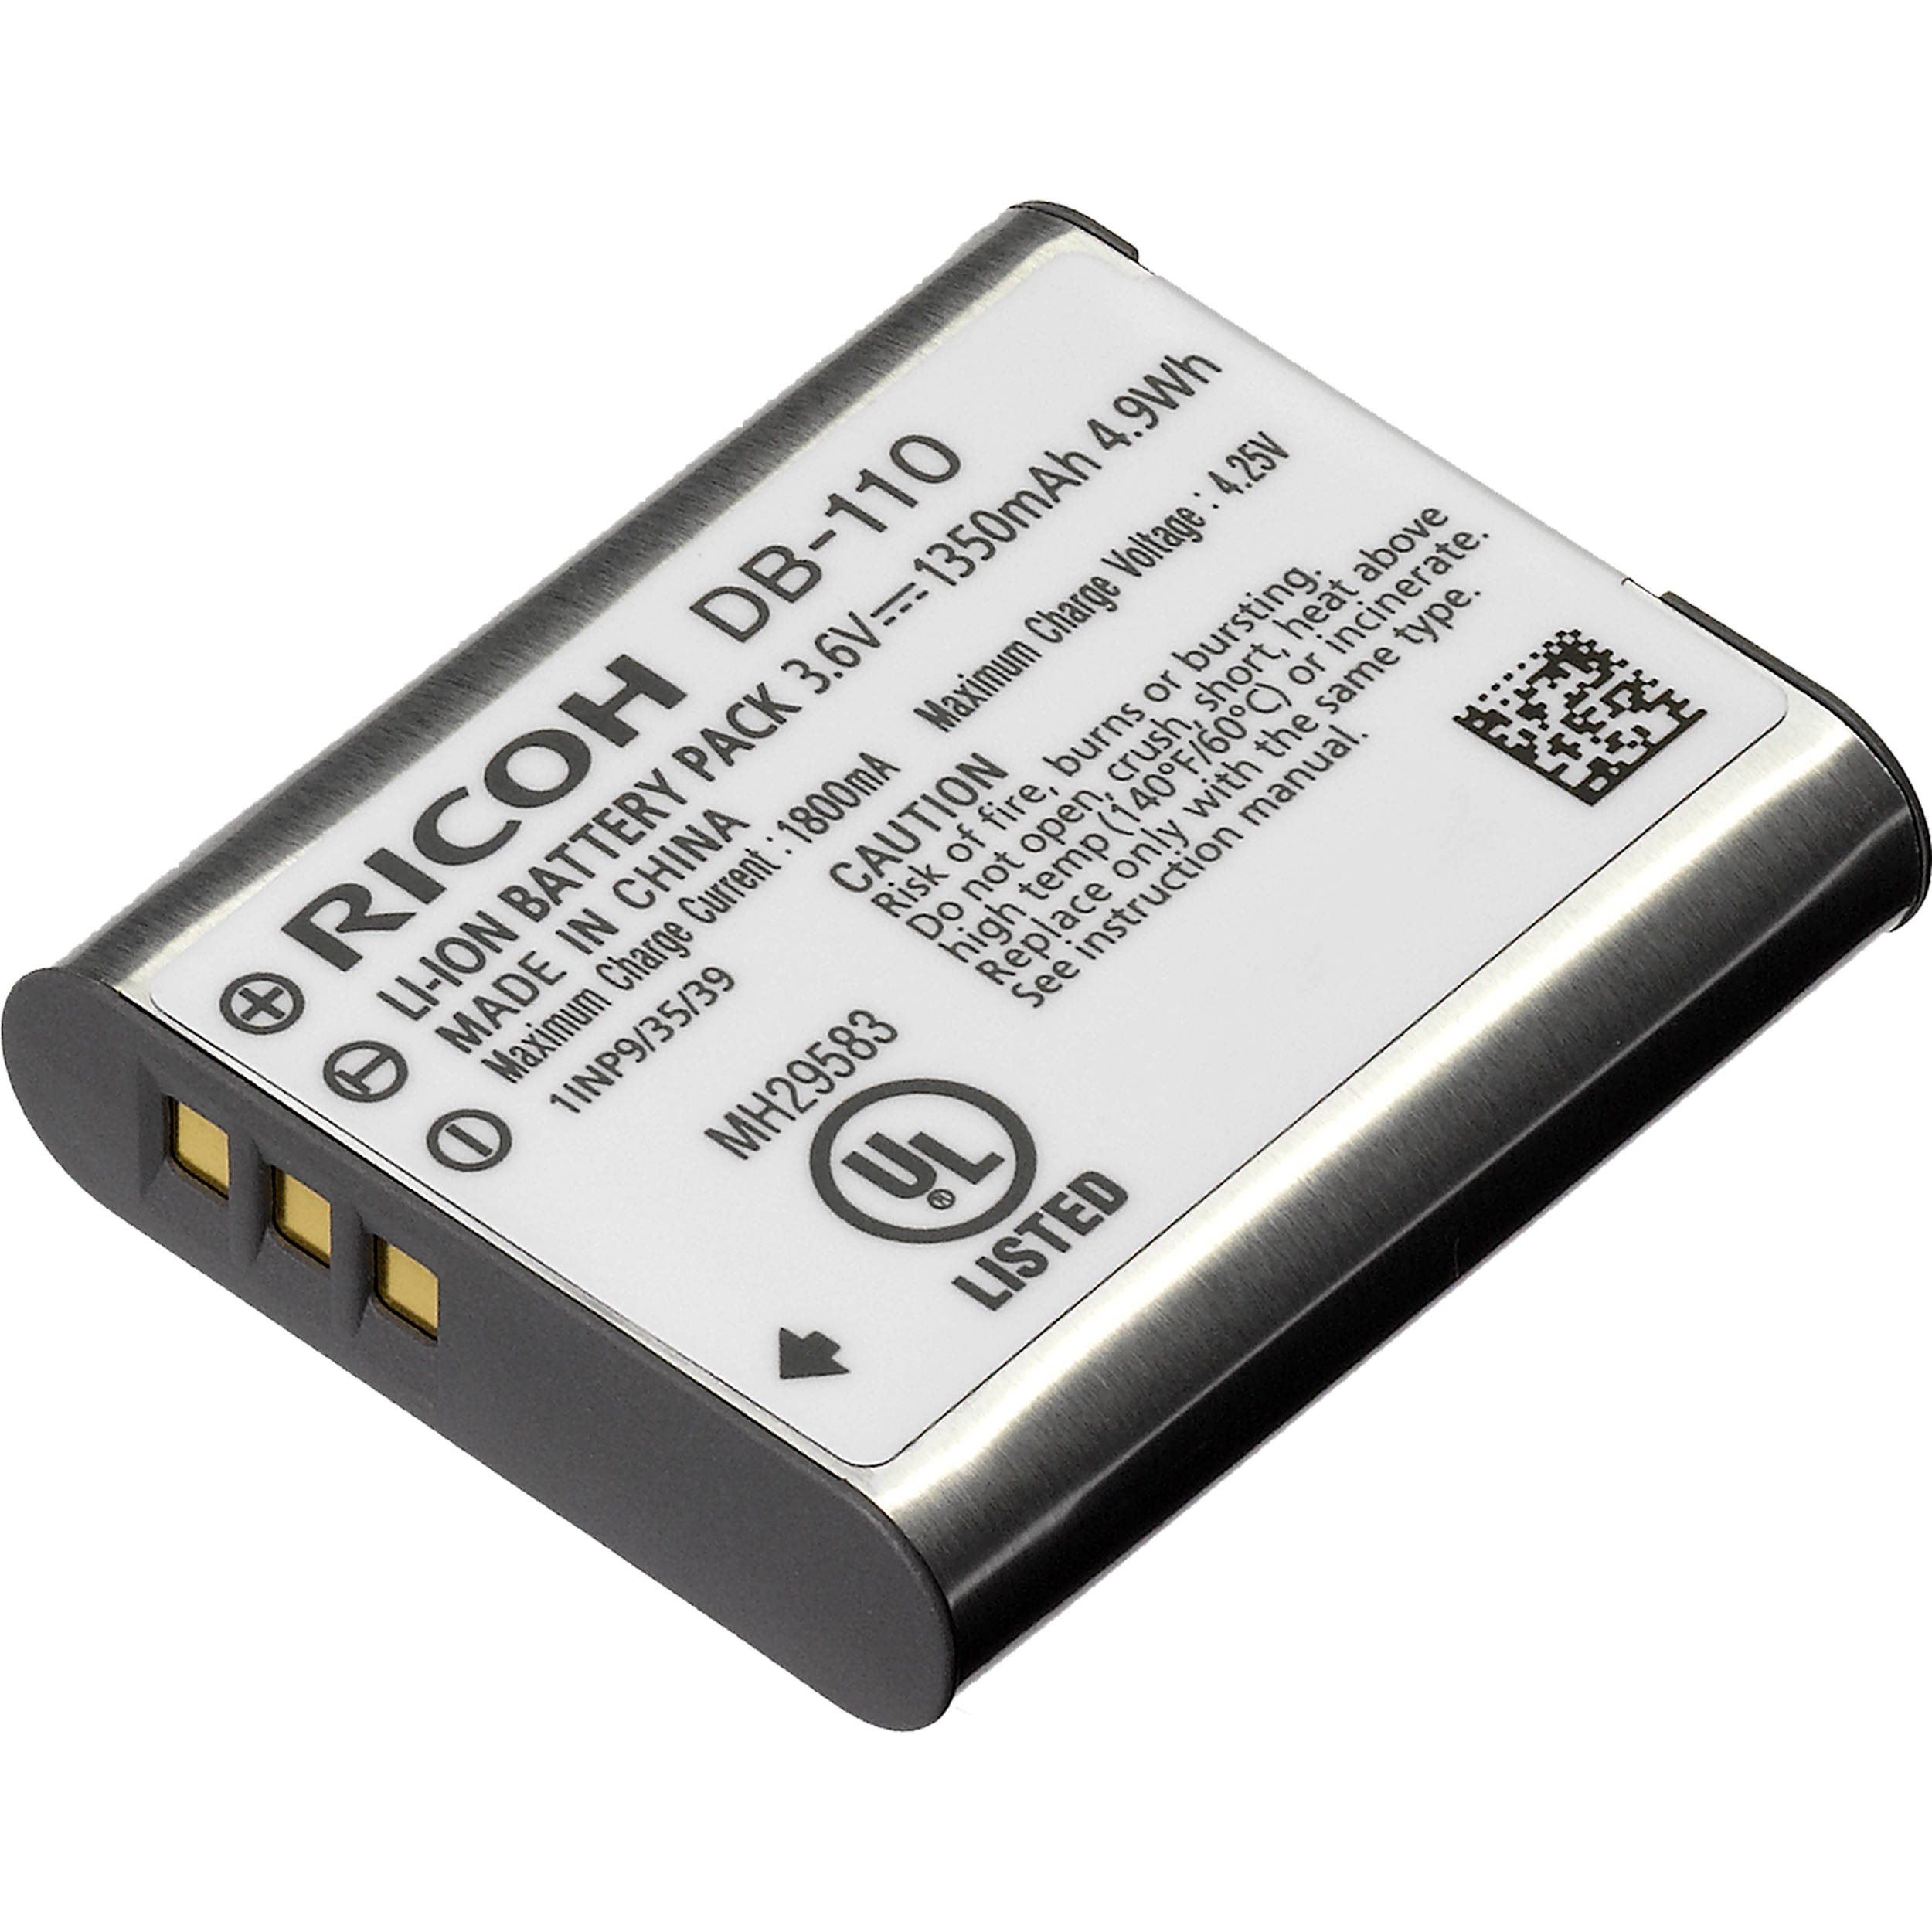 Lithium Ion Battery >> Ricoh Db 110 Rechargeable Lithium Ion Battery 3 6v 1350mah